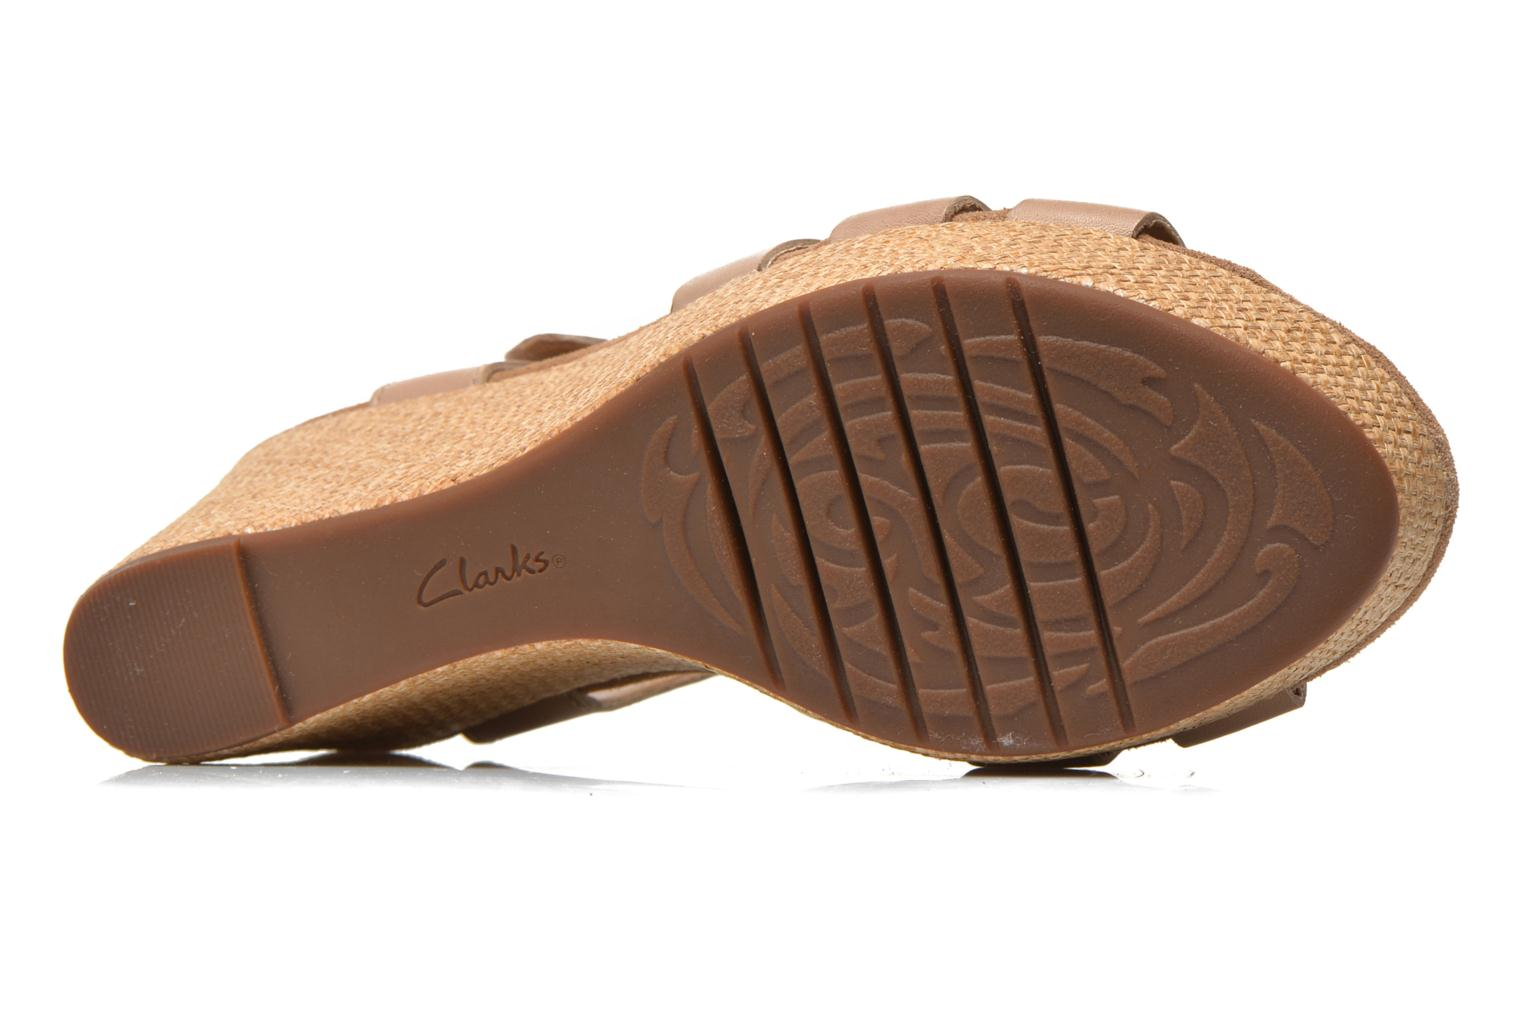 Sandals Clarks Caslynn Harp Beige view from above